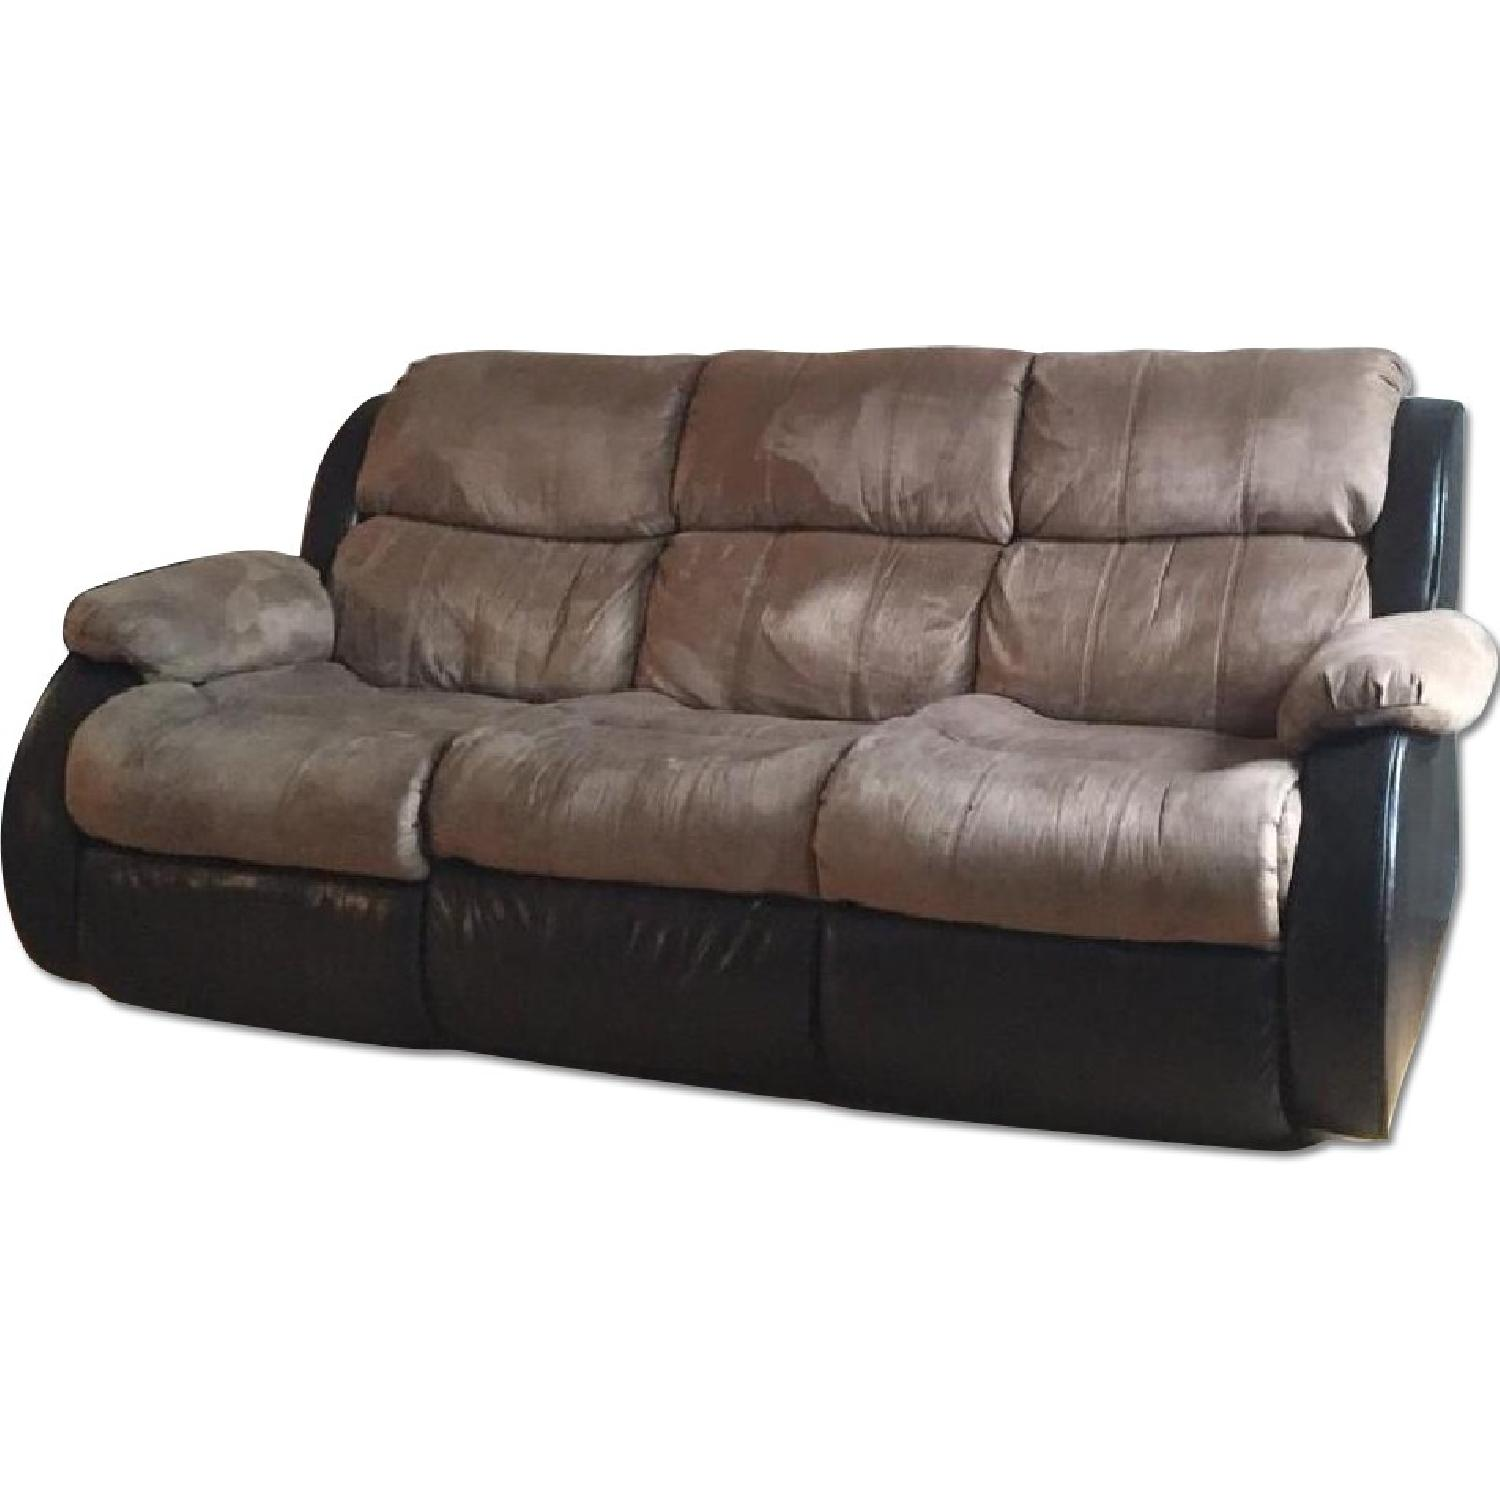 Ashley's Presley Dual Reclining Sofa in Cocoa - image-0